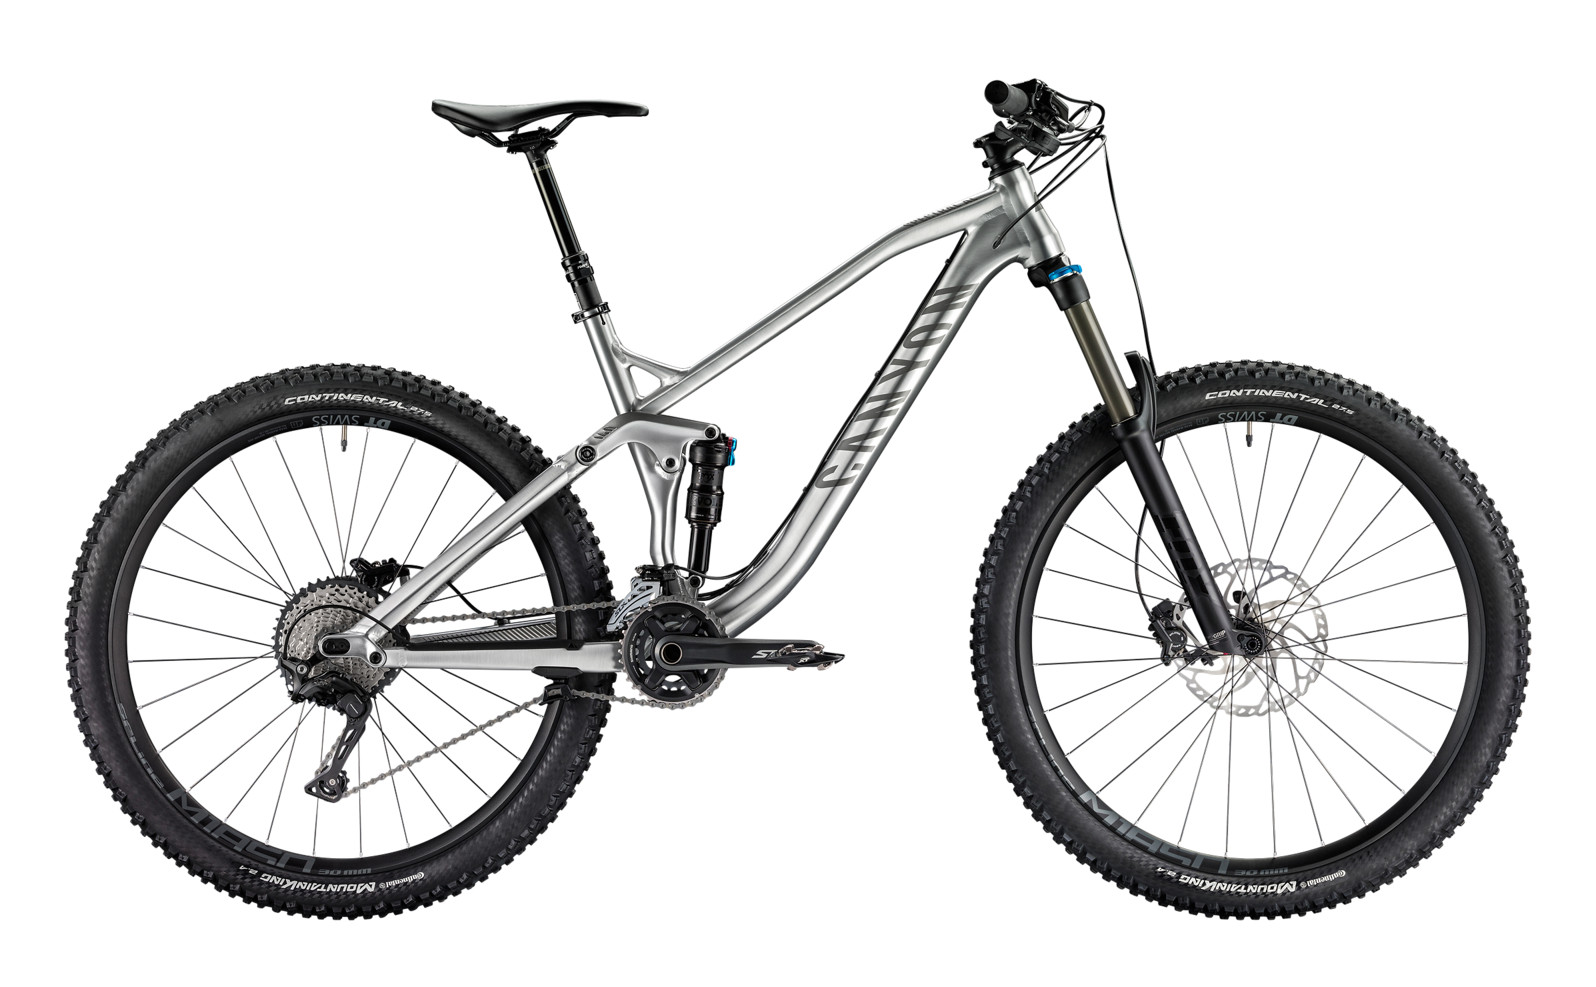 Reviews Com Product Reviews And Comparisons Of 2018 >> 2017 Canyon Spectral AL 6.0 Bike - Reviews, Comparisons, Specs - Mountain Bikes - Vital MTB